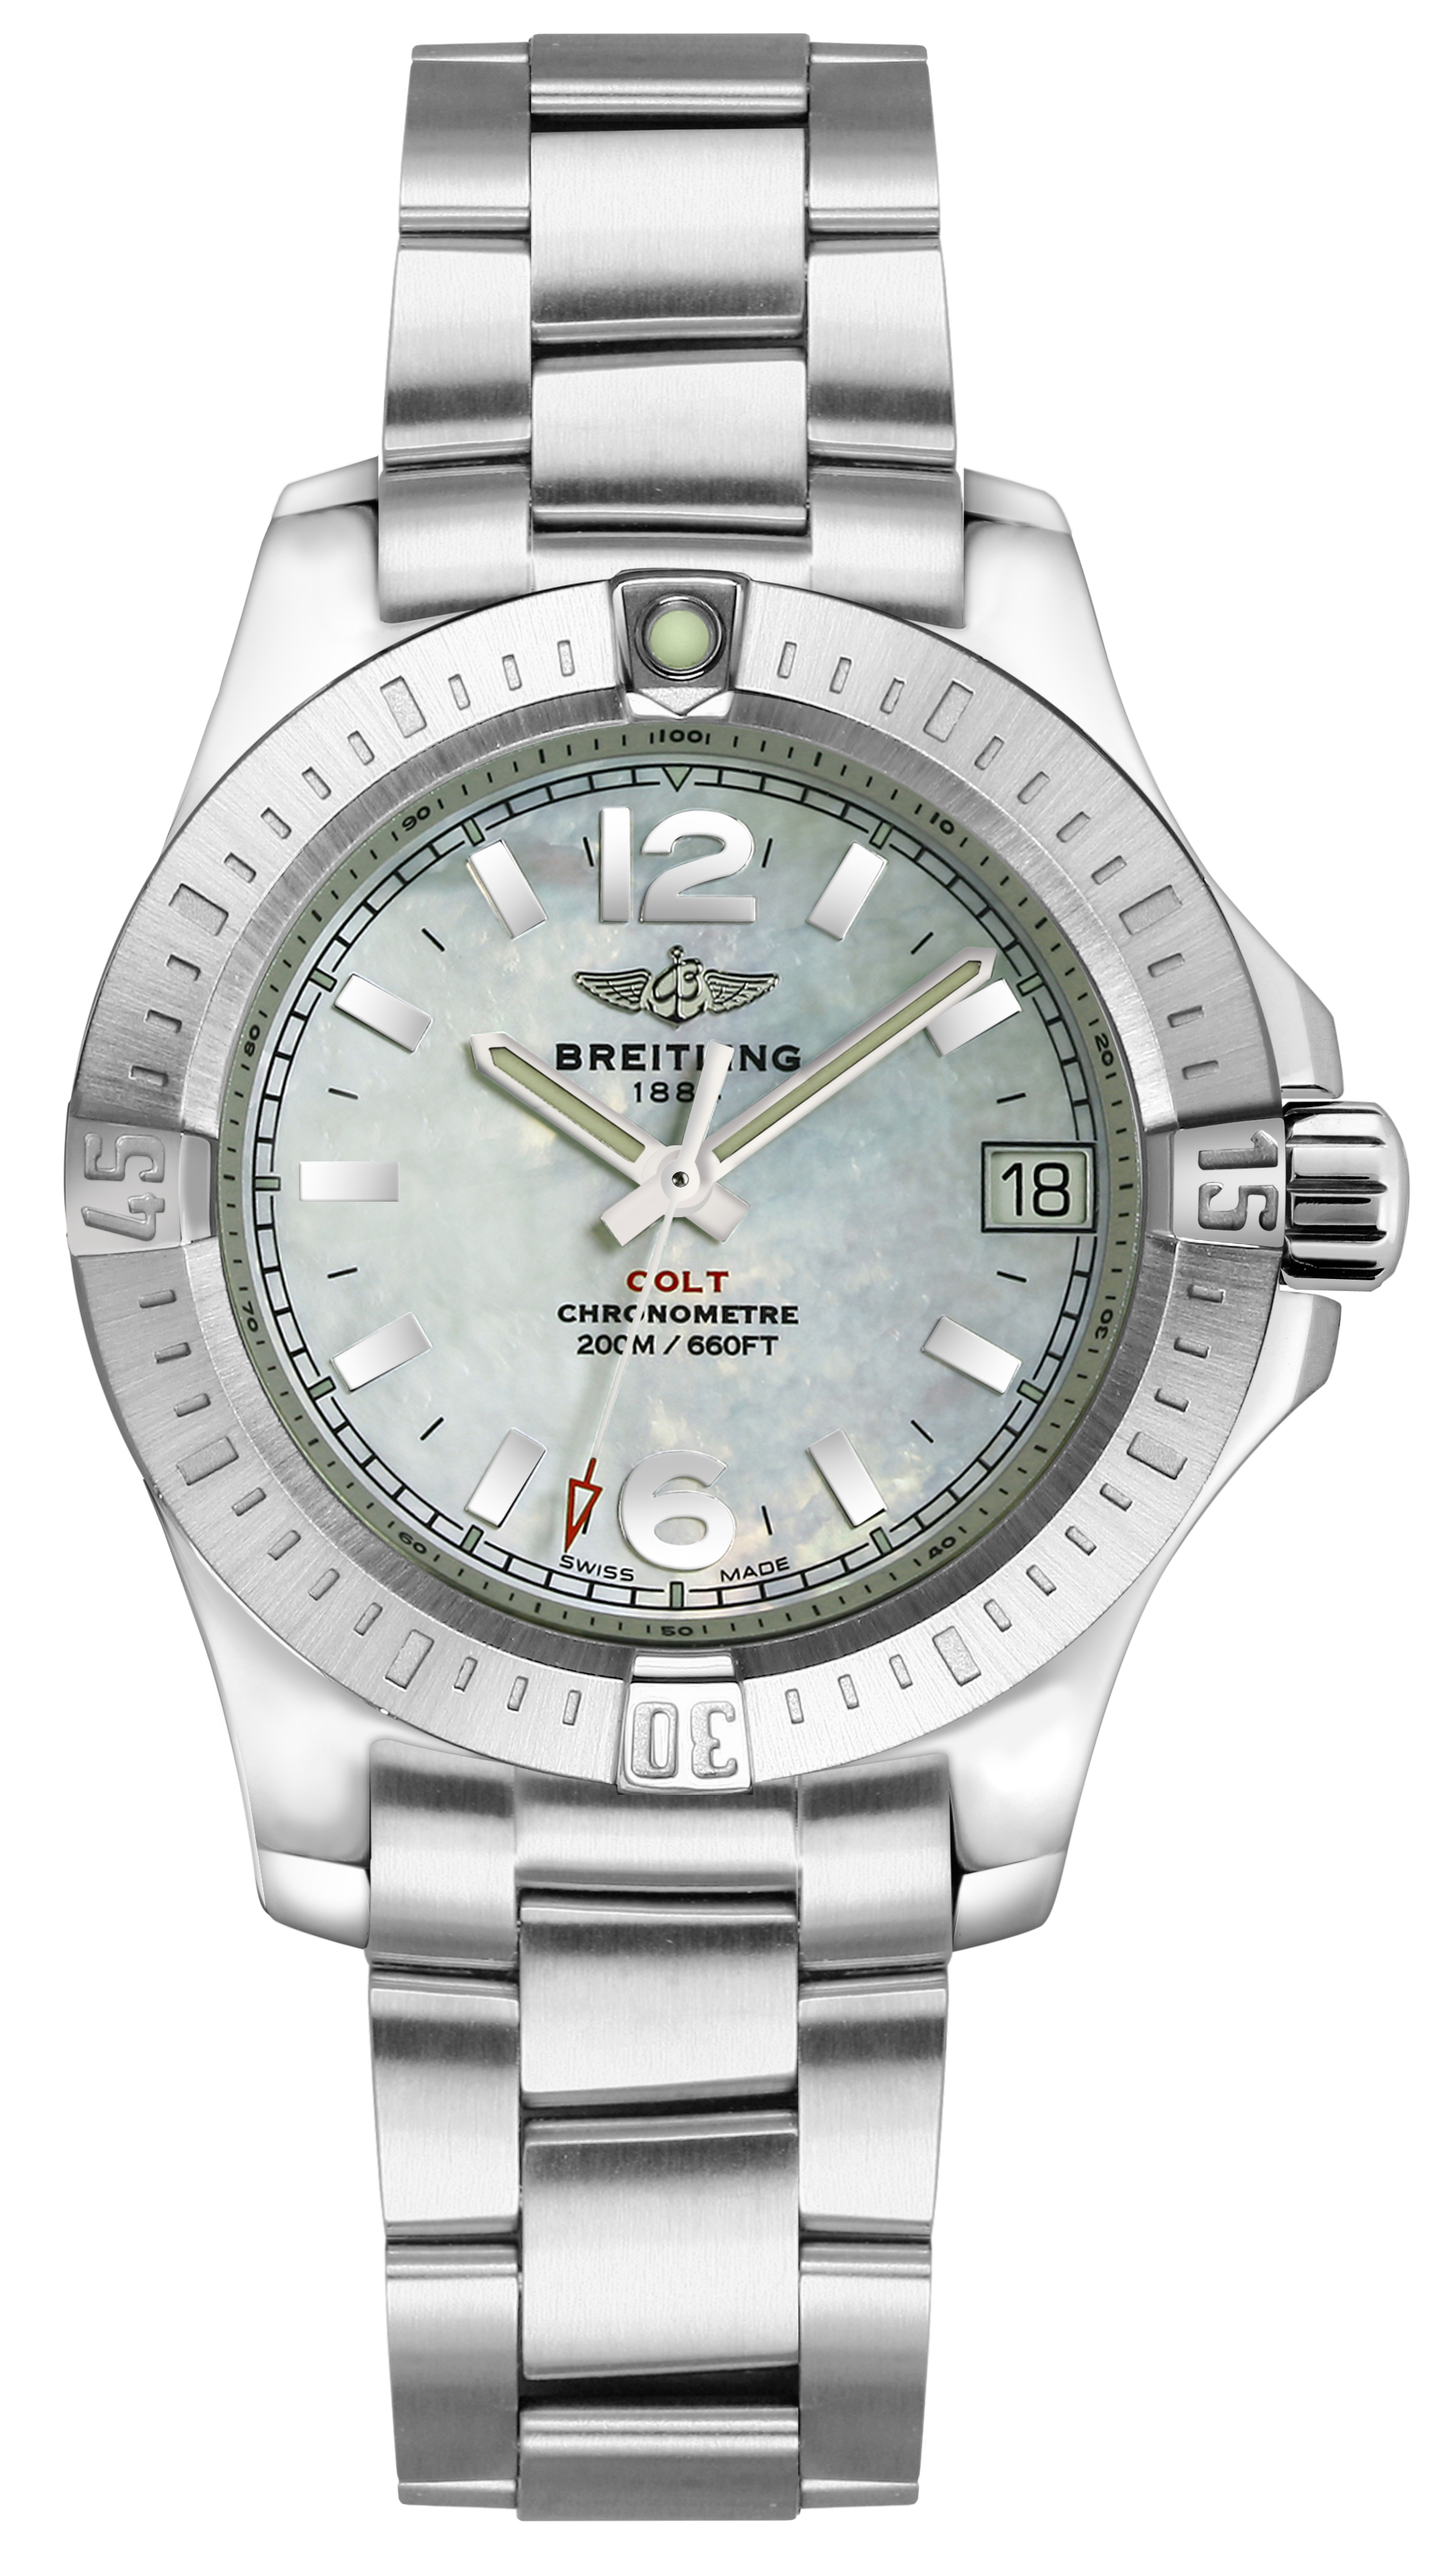 a7738811 a770-ss Breitling Colt Lady 33mm Ladies Watch f1dce57935a